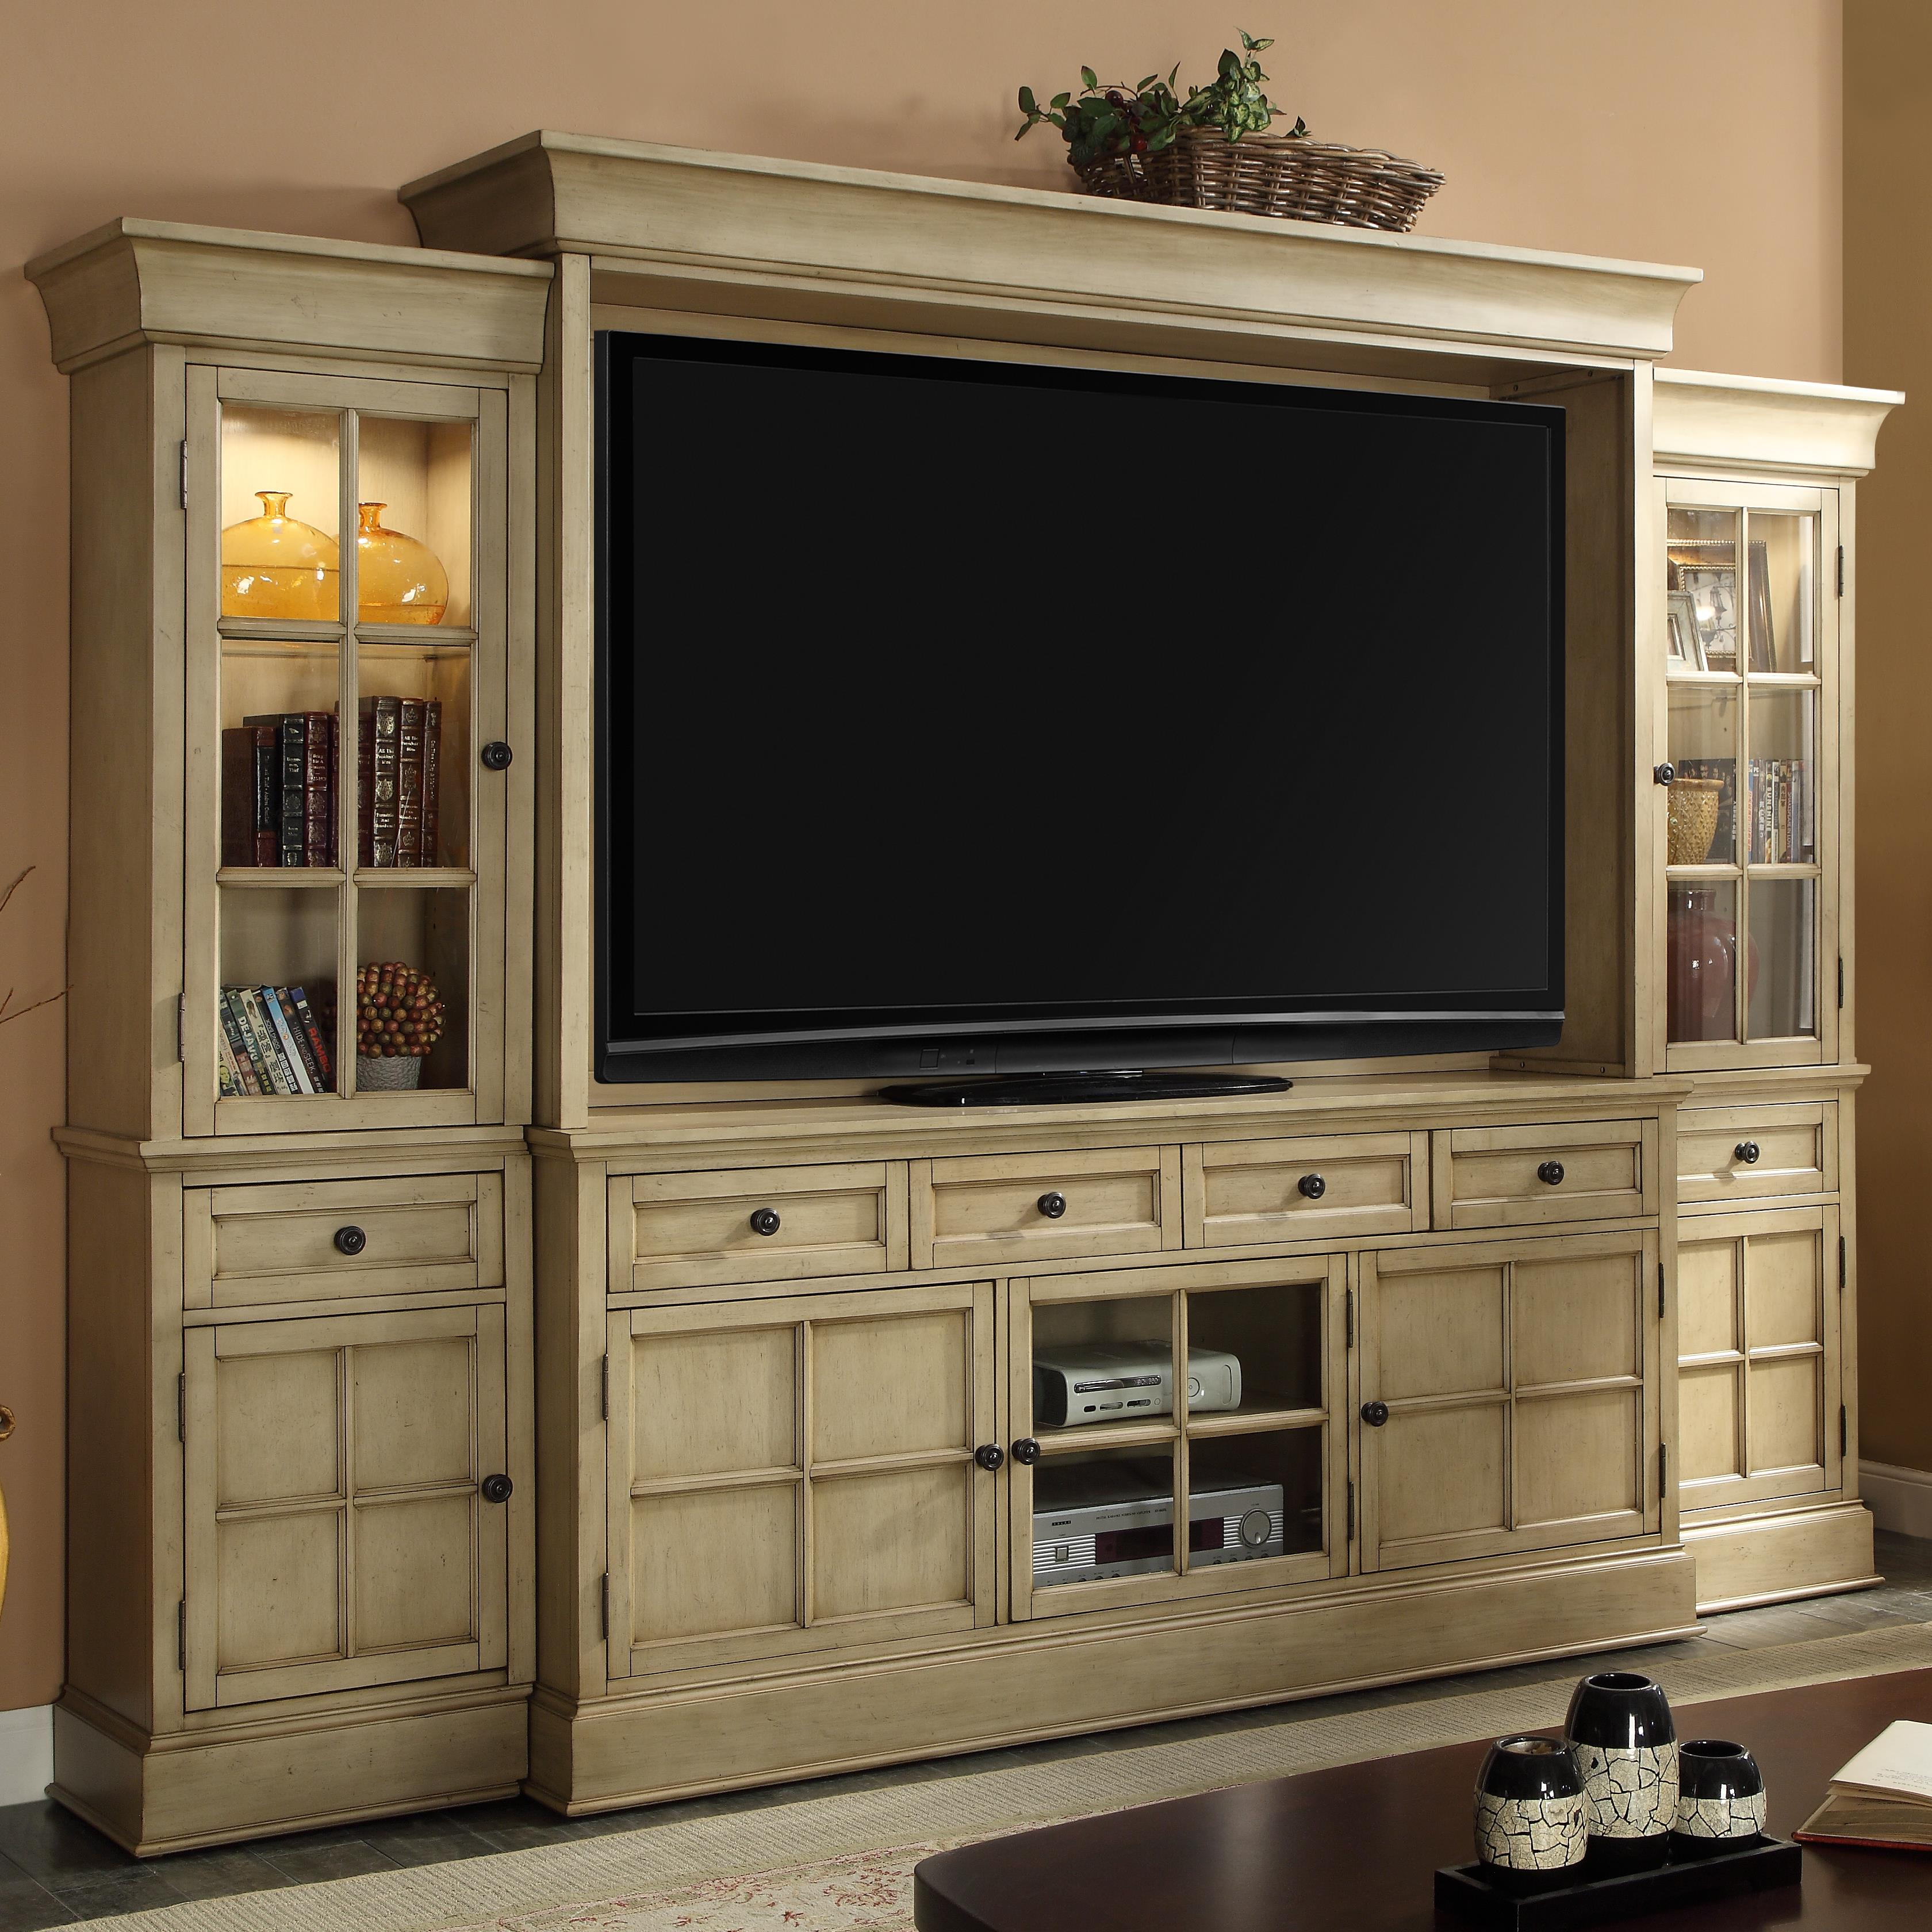 Legends Furniture Bristol Collection Entertainment Wall Unit - Item Number: ZBRT-1774+2074+3001+3002